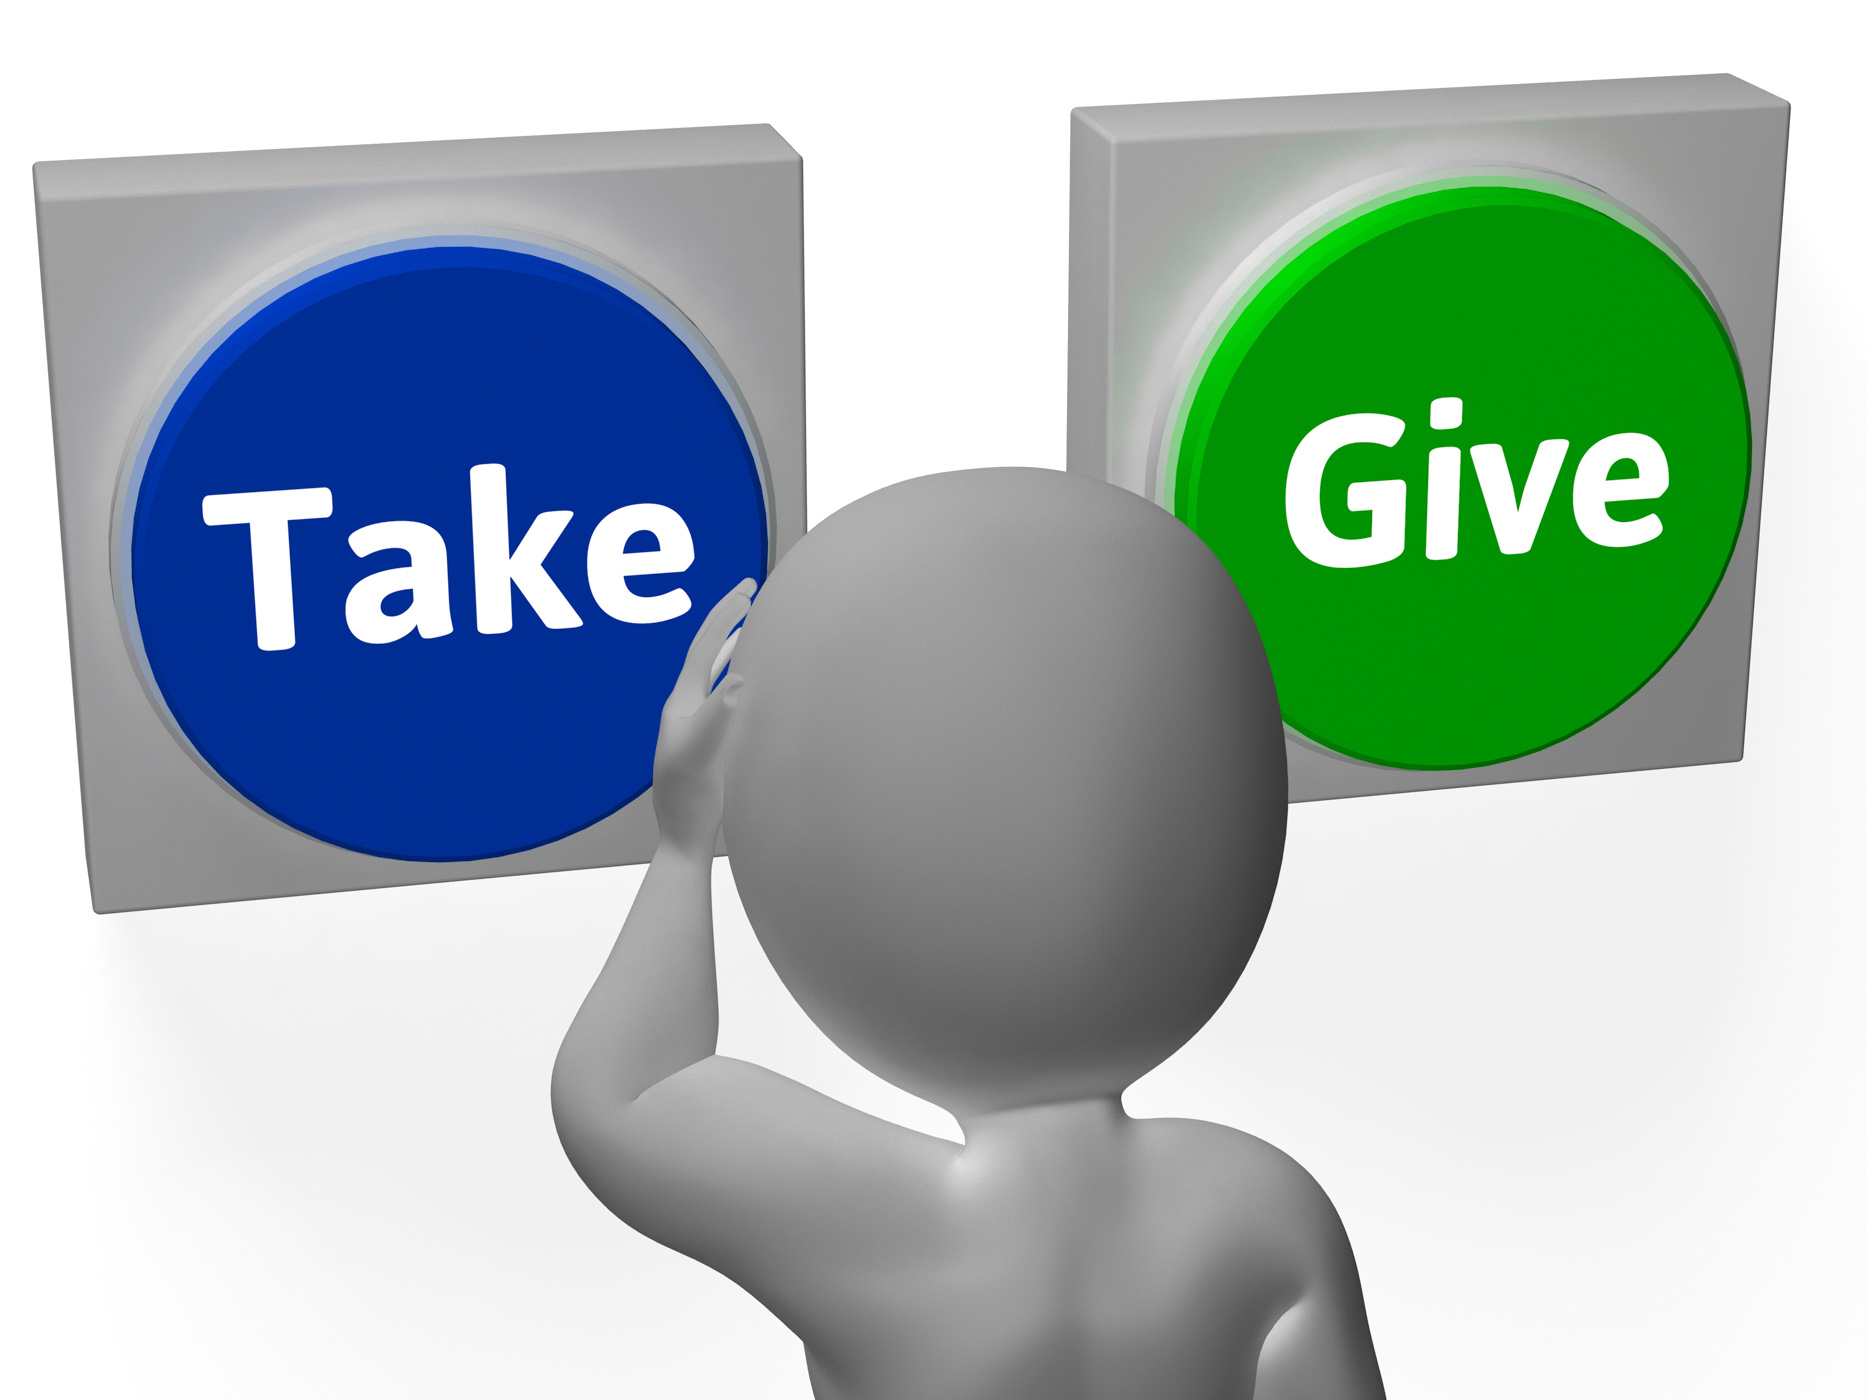 Take give buttons show compromise or negotiation photo